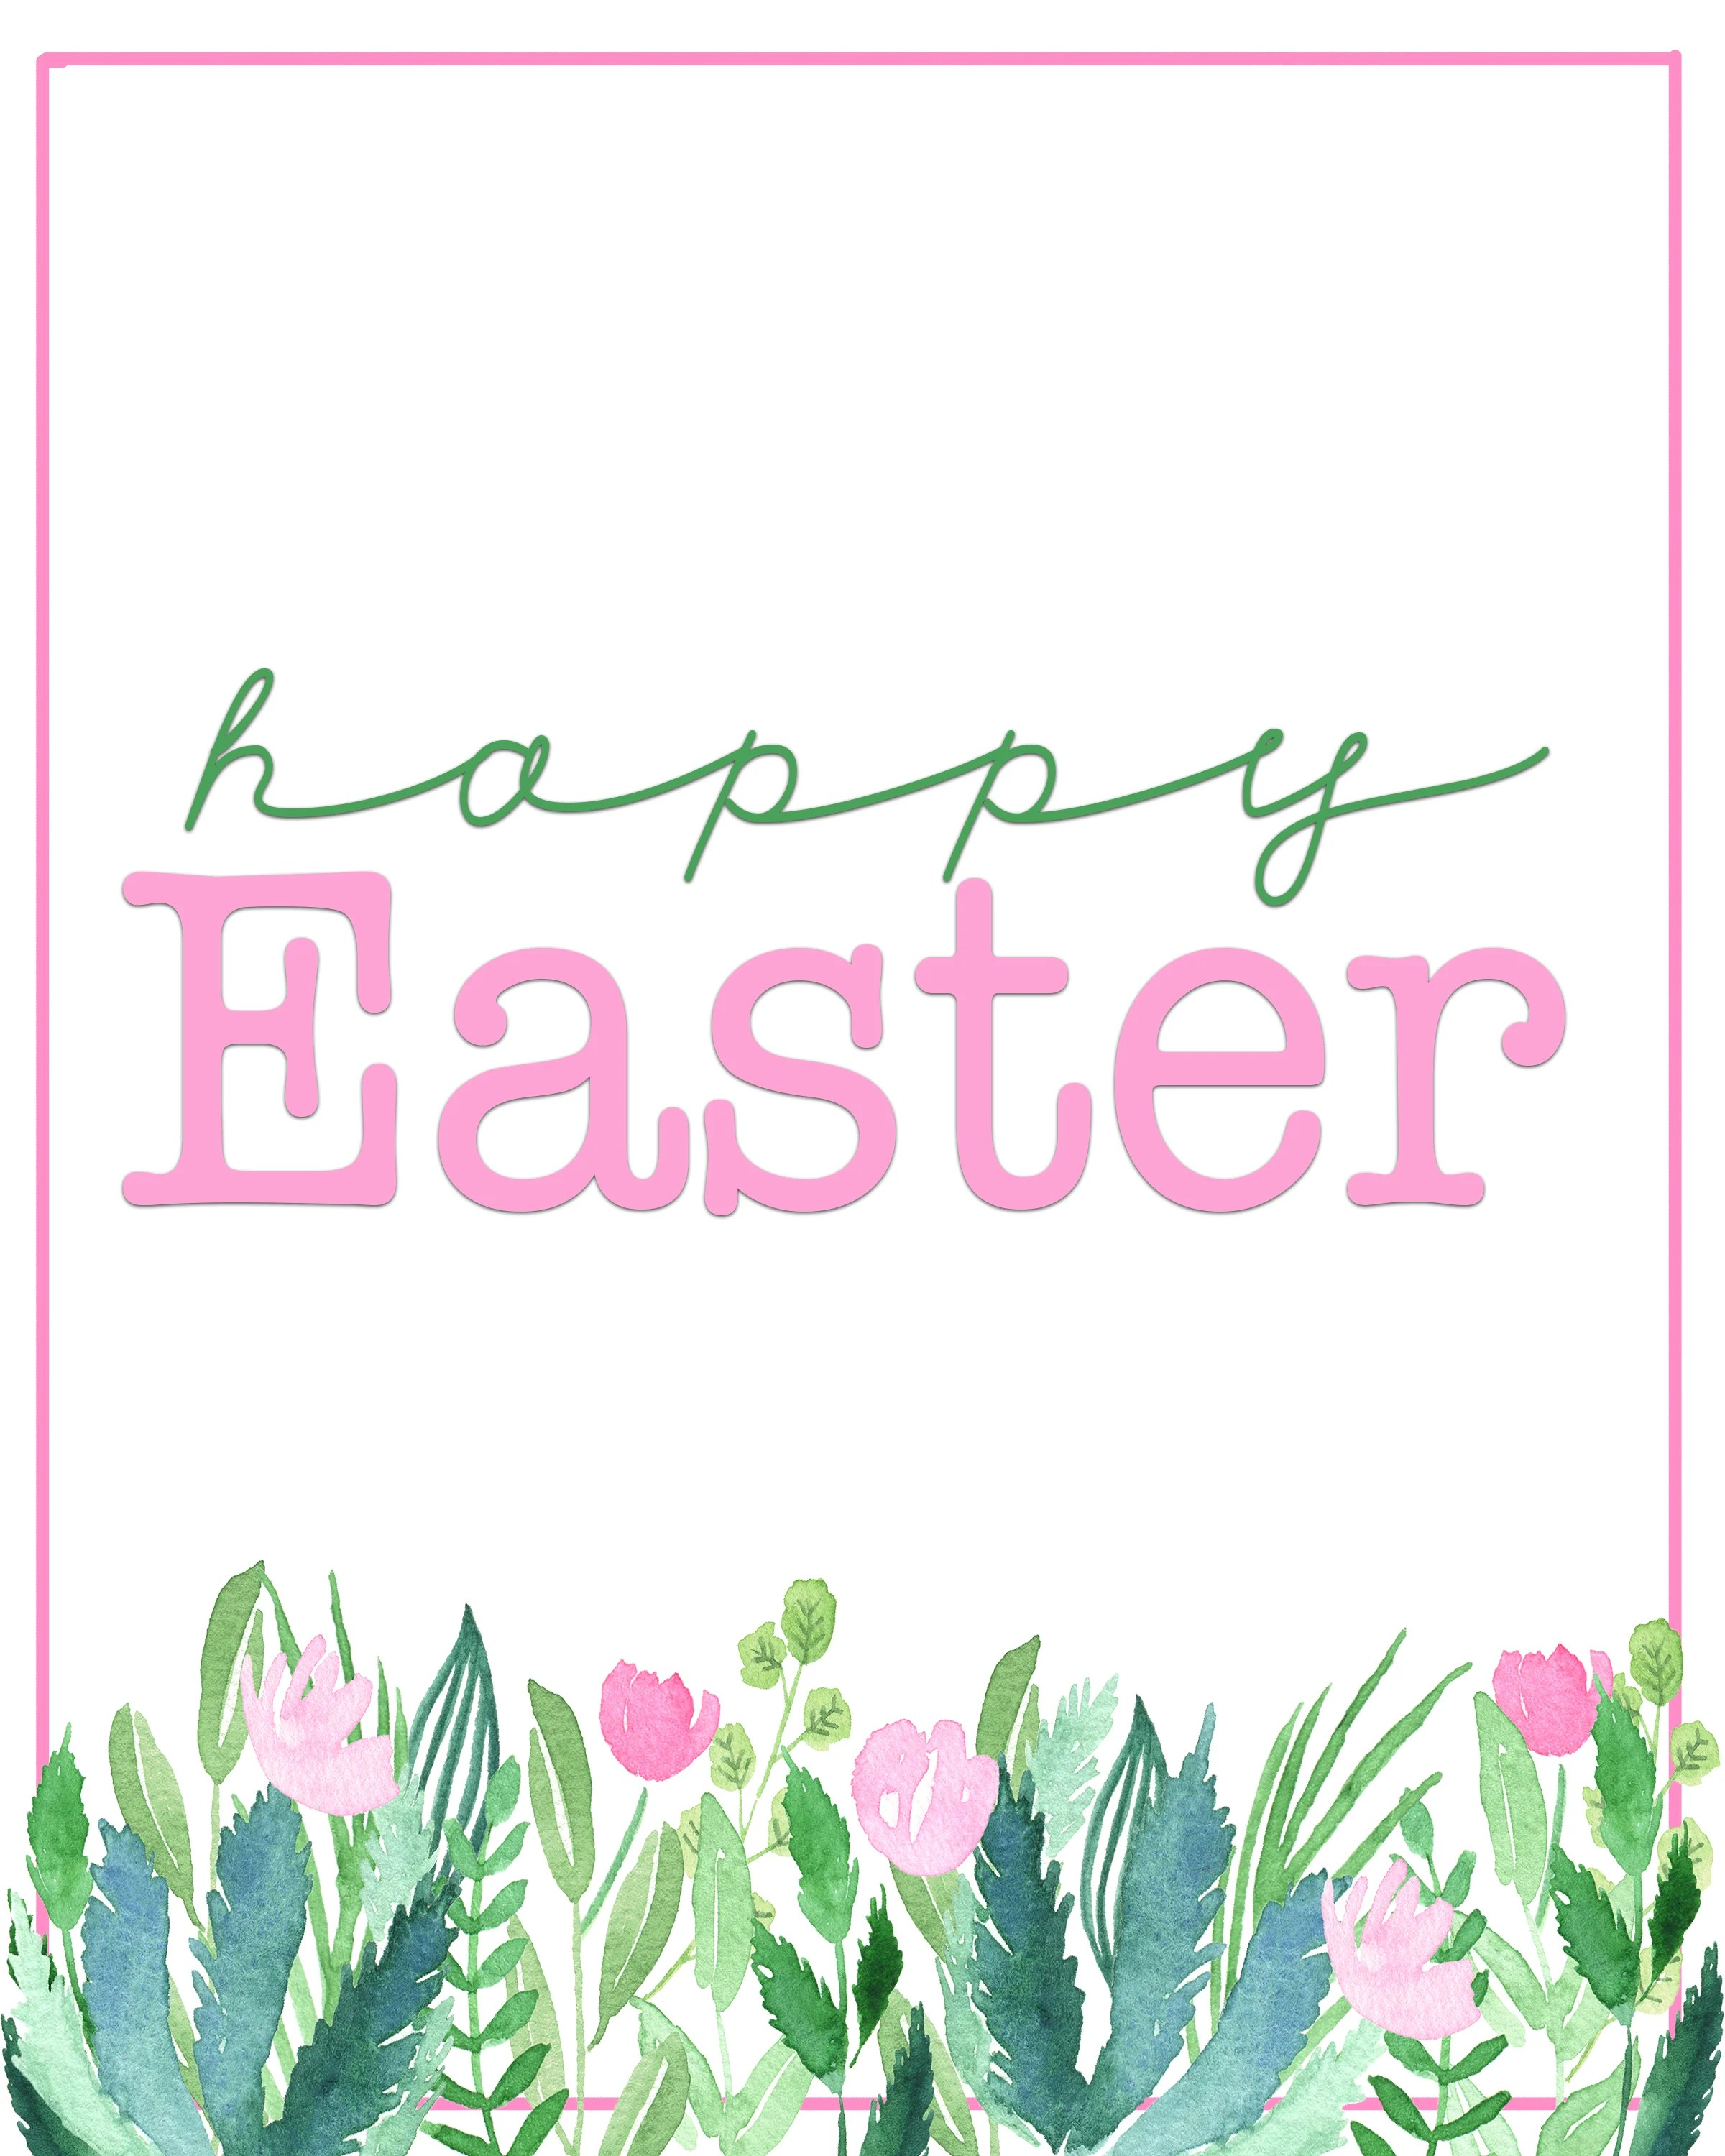 image relating to Happy Easter Sign Printable referred to as Satisfied Easter Printables : Absolutely free Spring Printables - Crimson